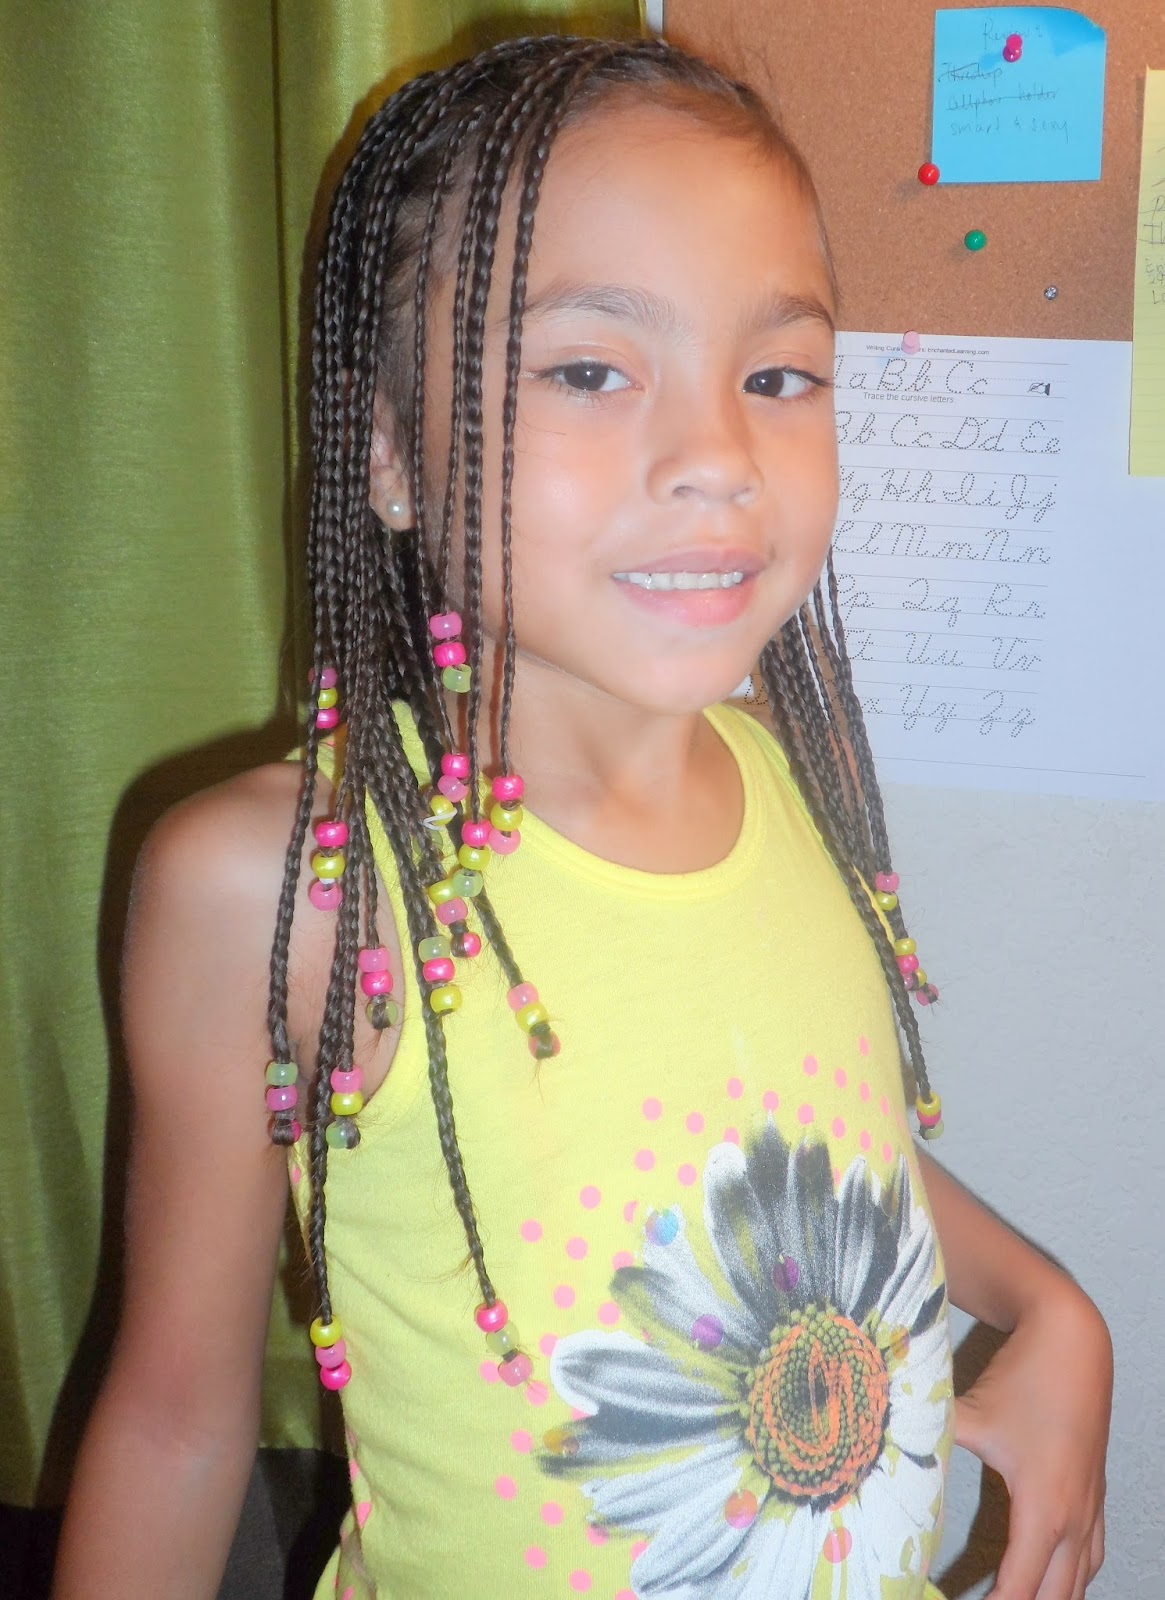 Life's Perception & Inspiration: Braided Hair with Beads